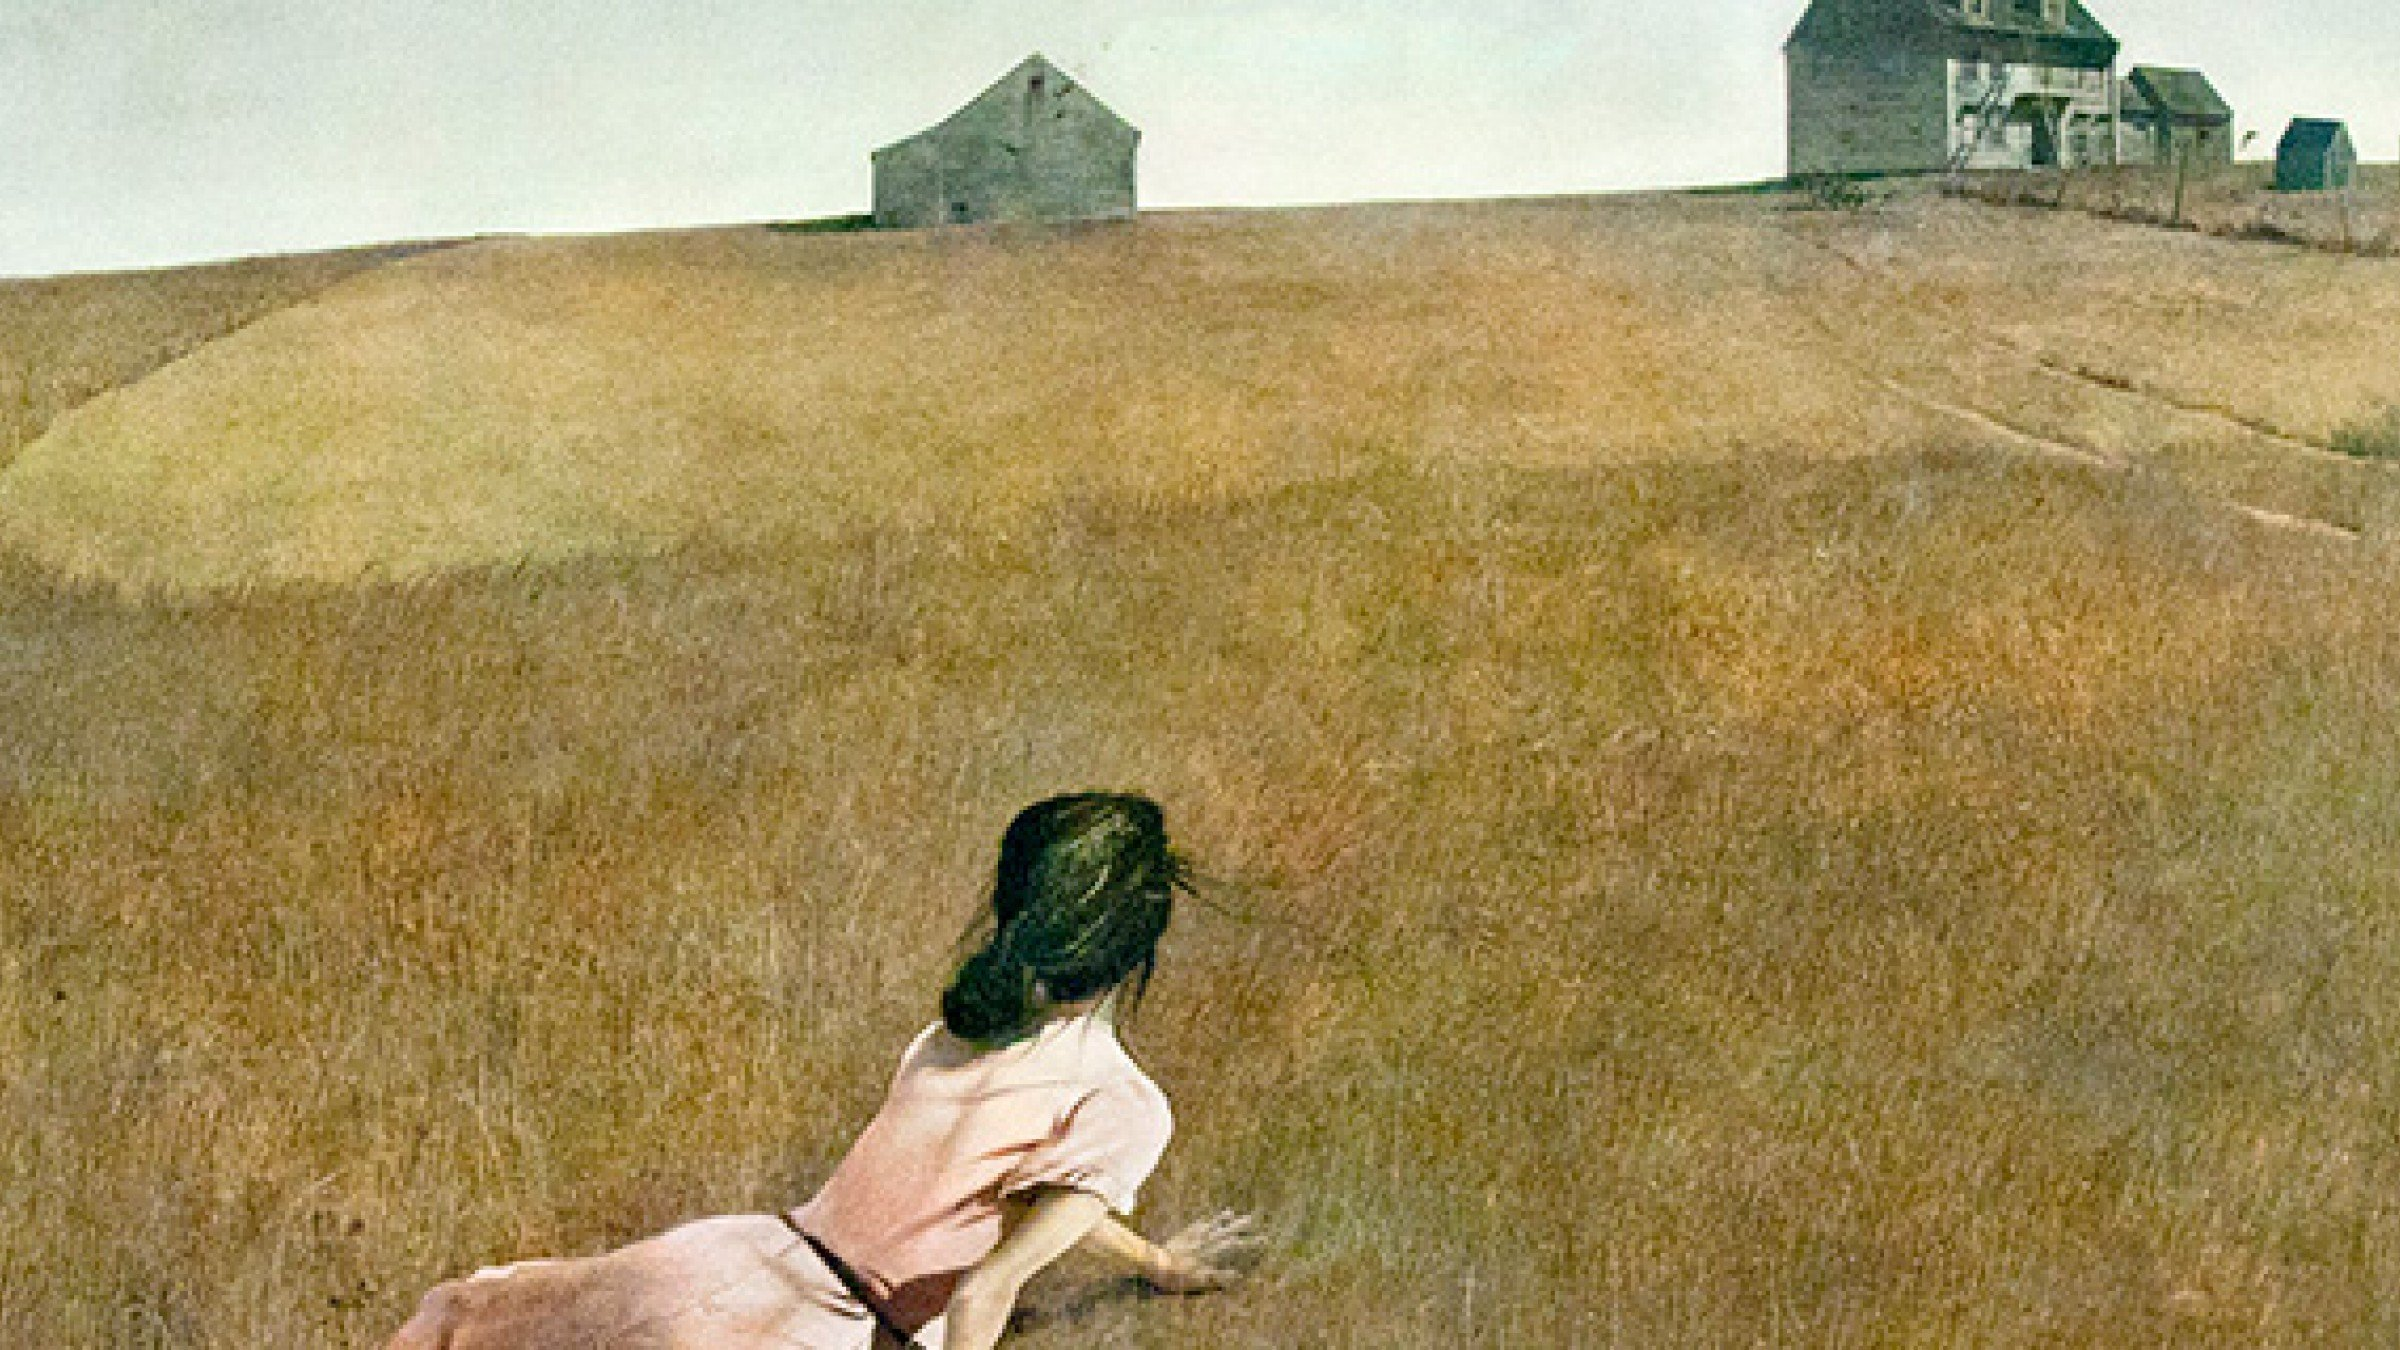 What Can Filmmakers Learn from the Way Andrew Wyeth Paints?